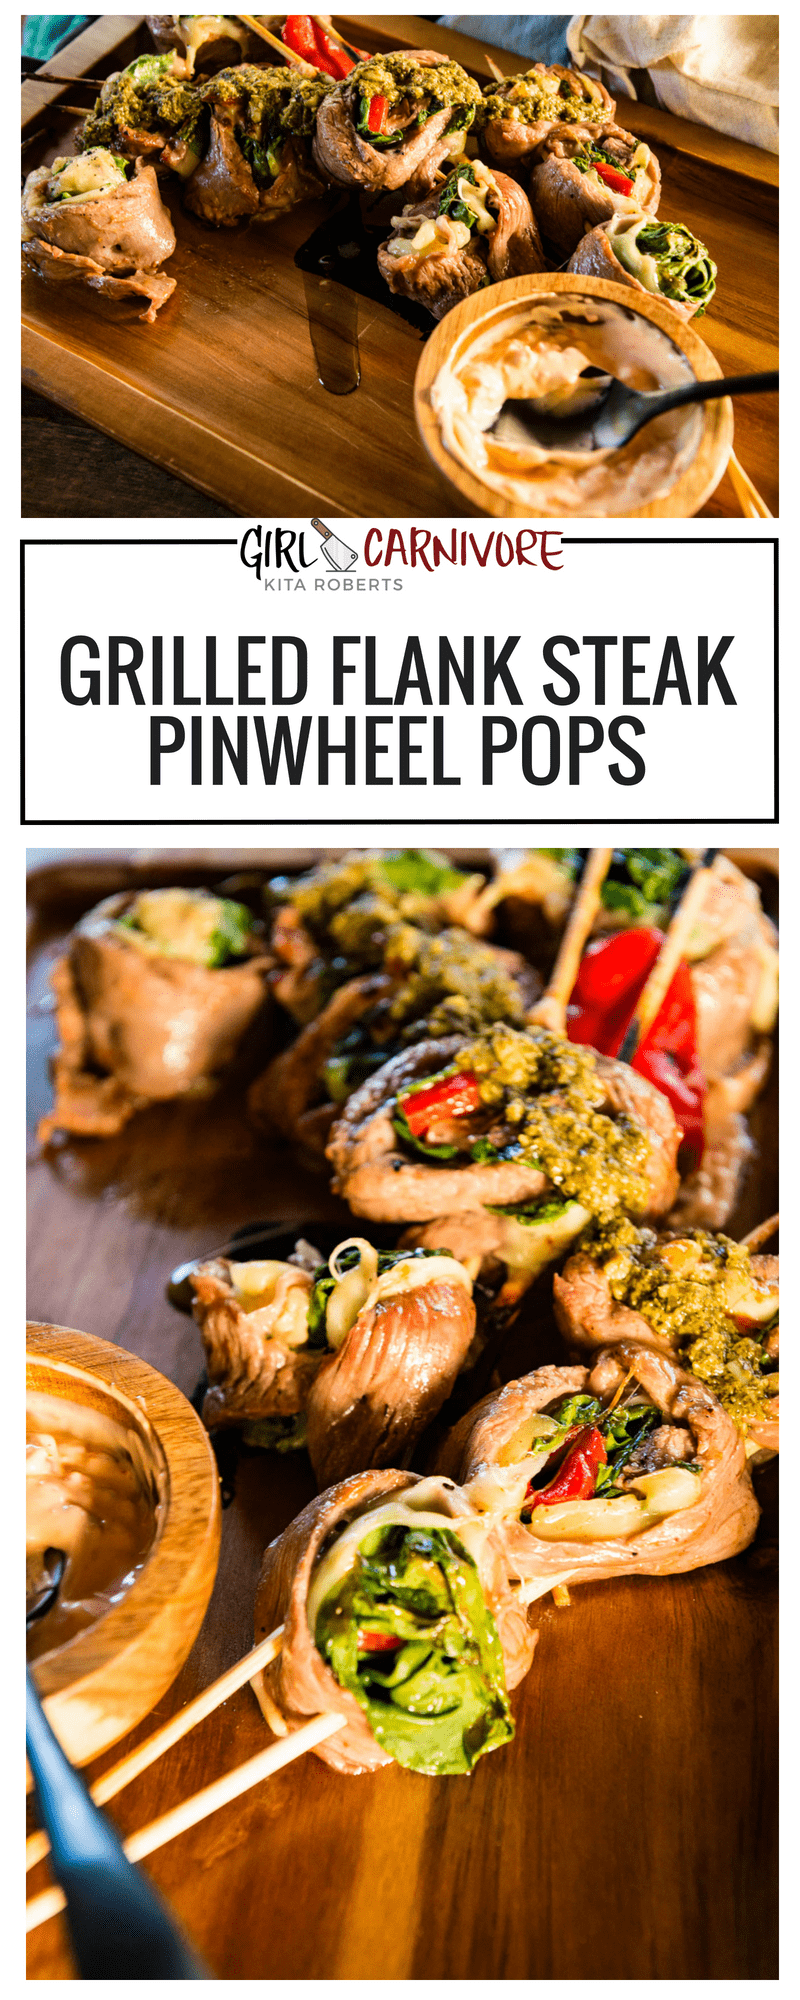 Grilled Flank Steak Pinwheels Recipe - GirlCarnivore Kita Roberts -9973